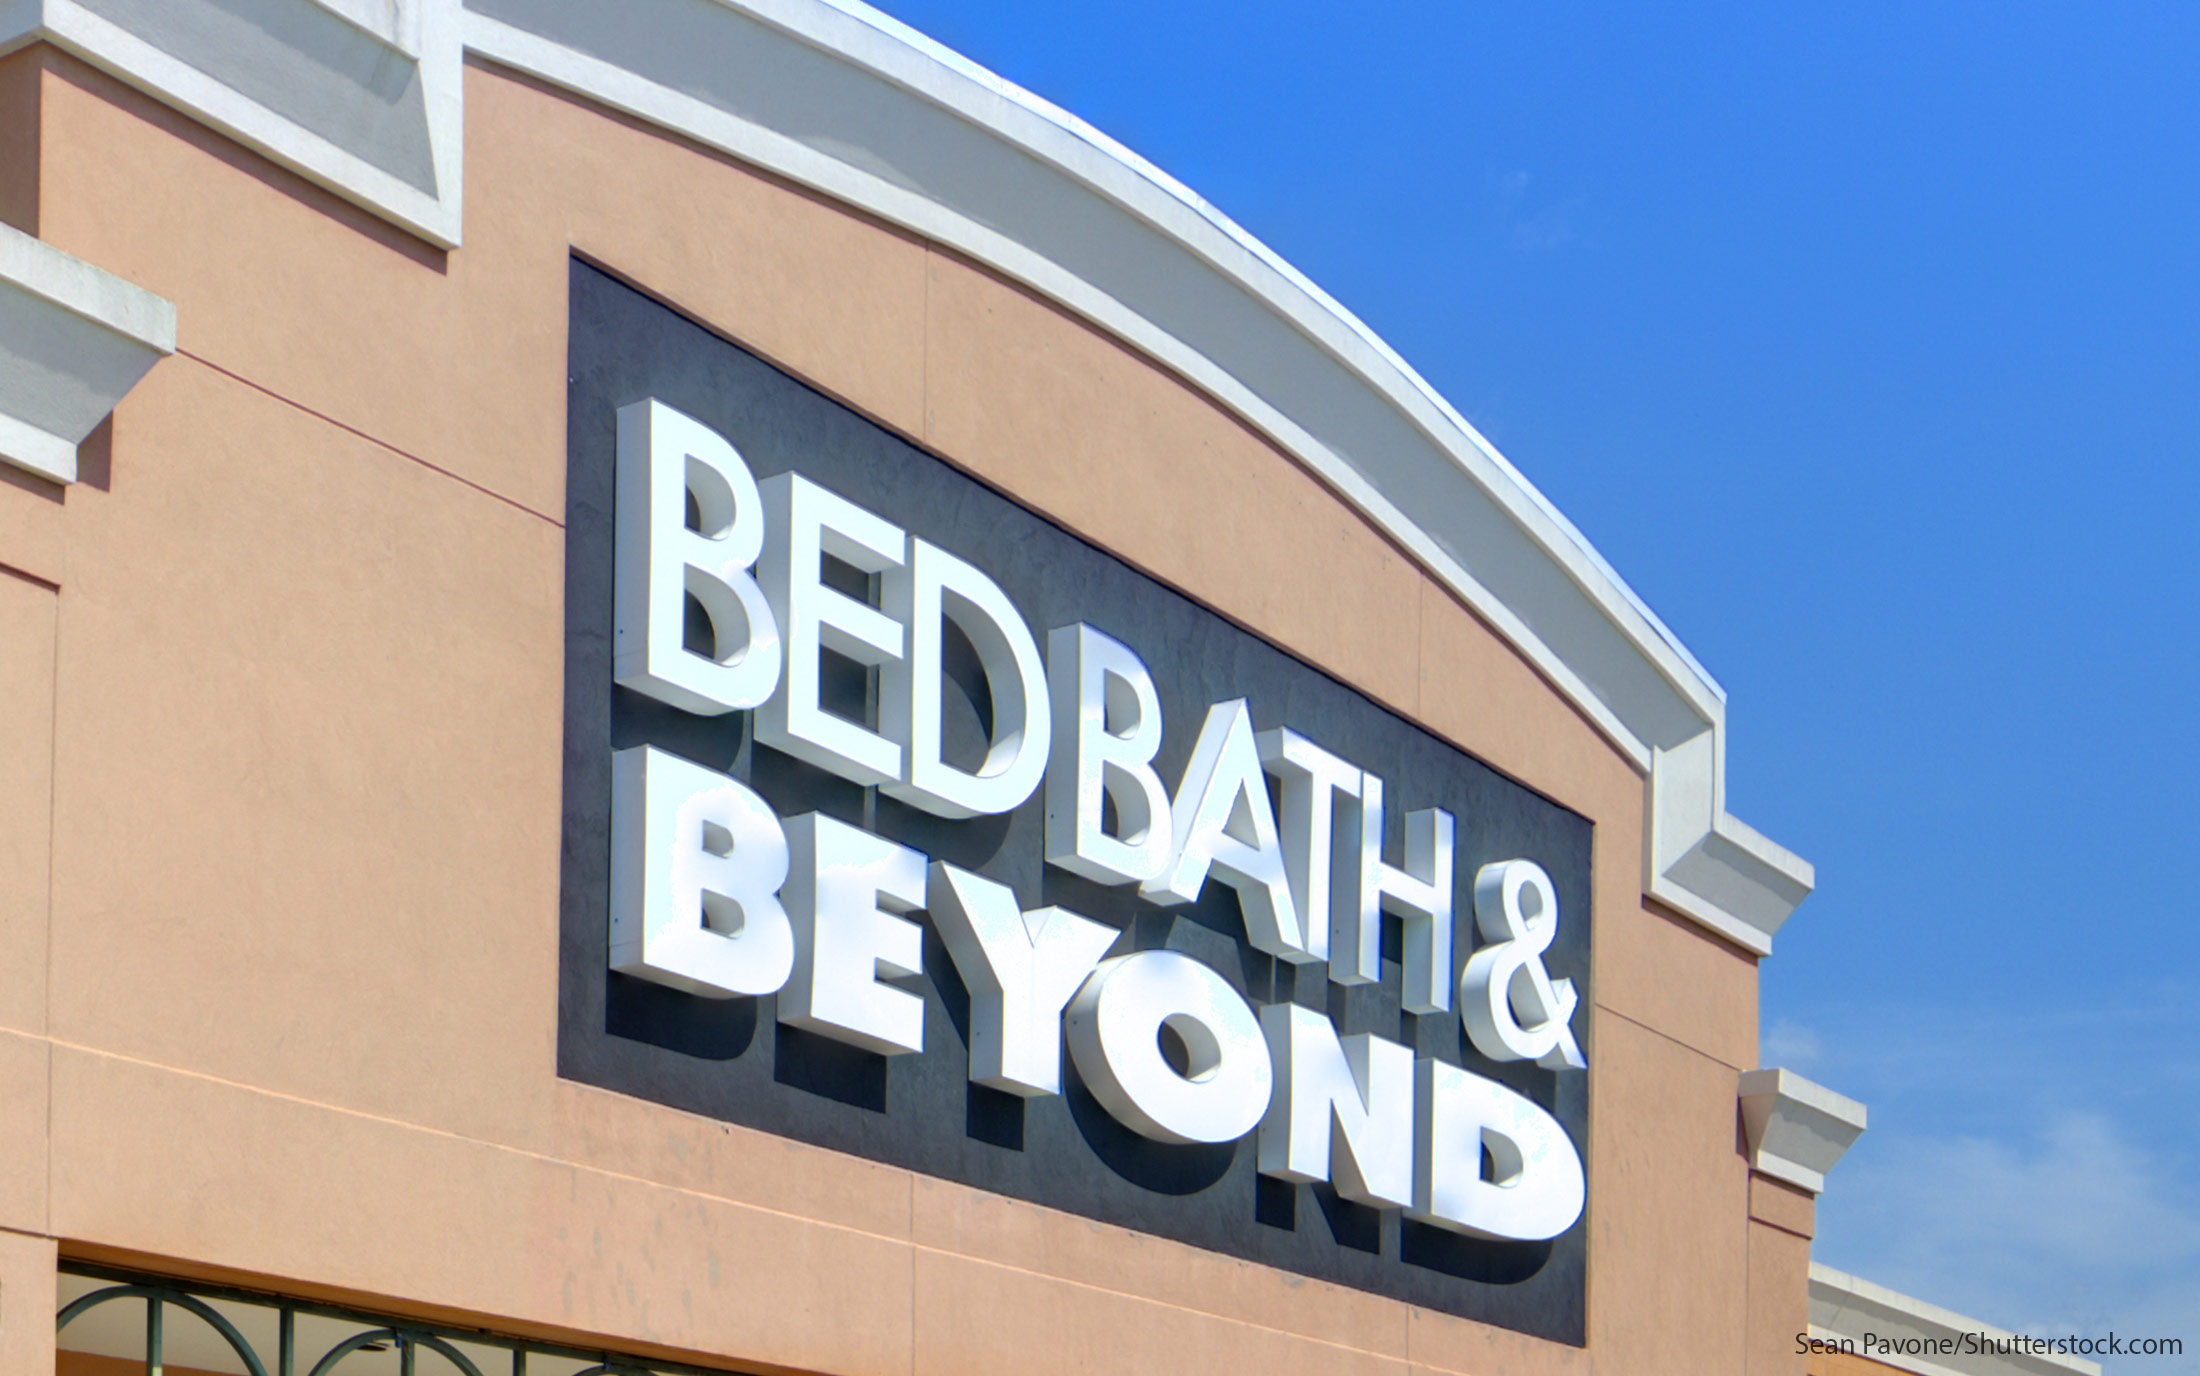 9 ways to save money at bed bath & beyond -- the motley fool